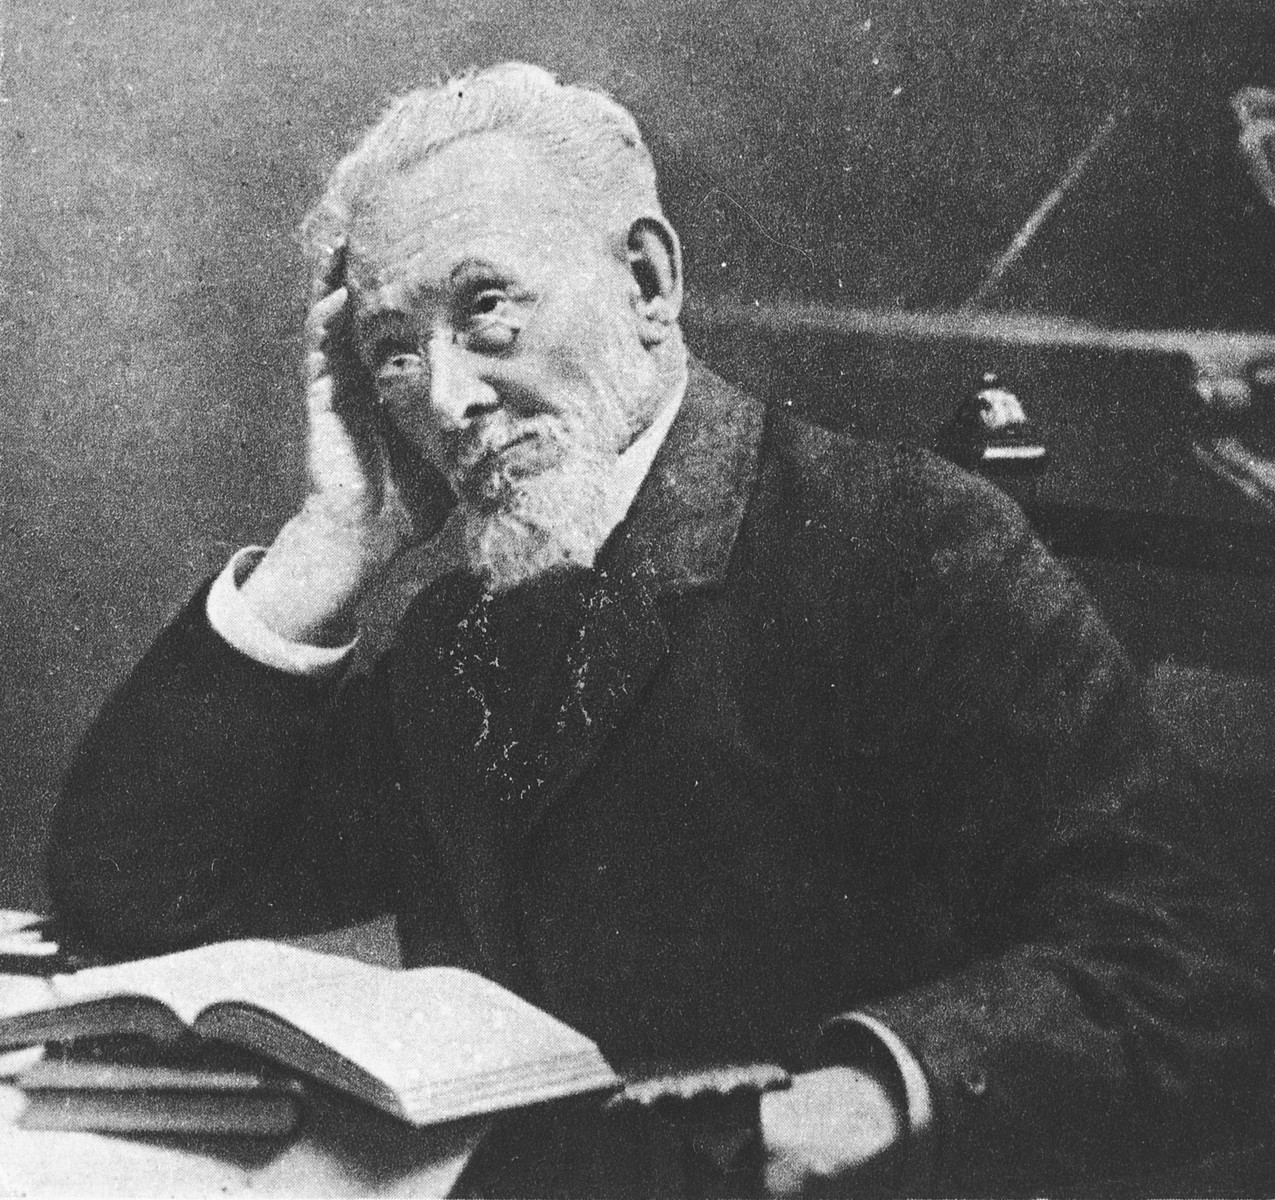 Portrait of the Yiddish author, Mendel Mokher Seforim (1835-1917).